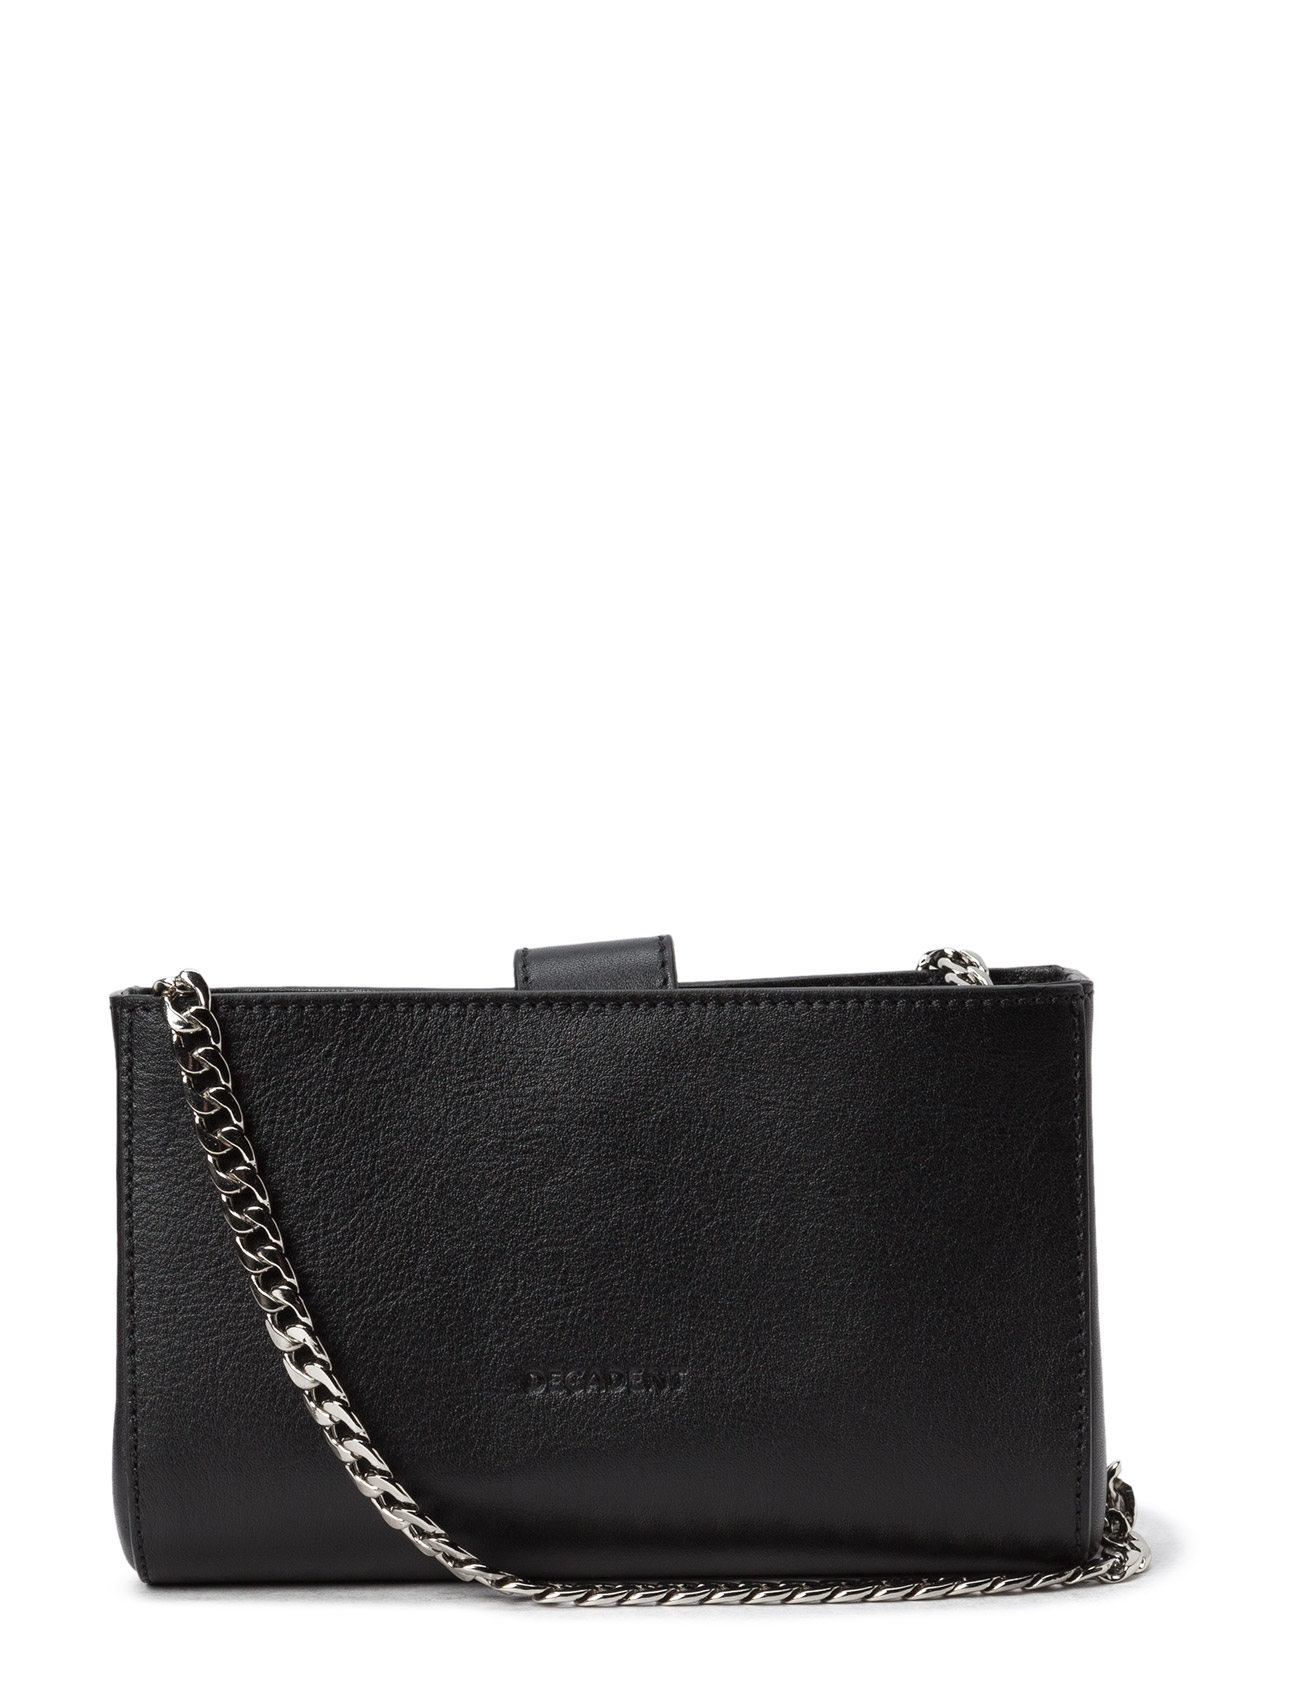 decadent – Tiny open cross body with chain på boozt.com dk